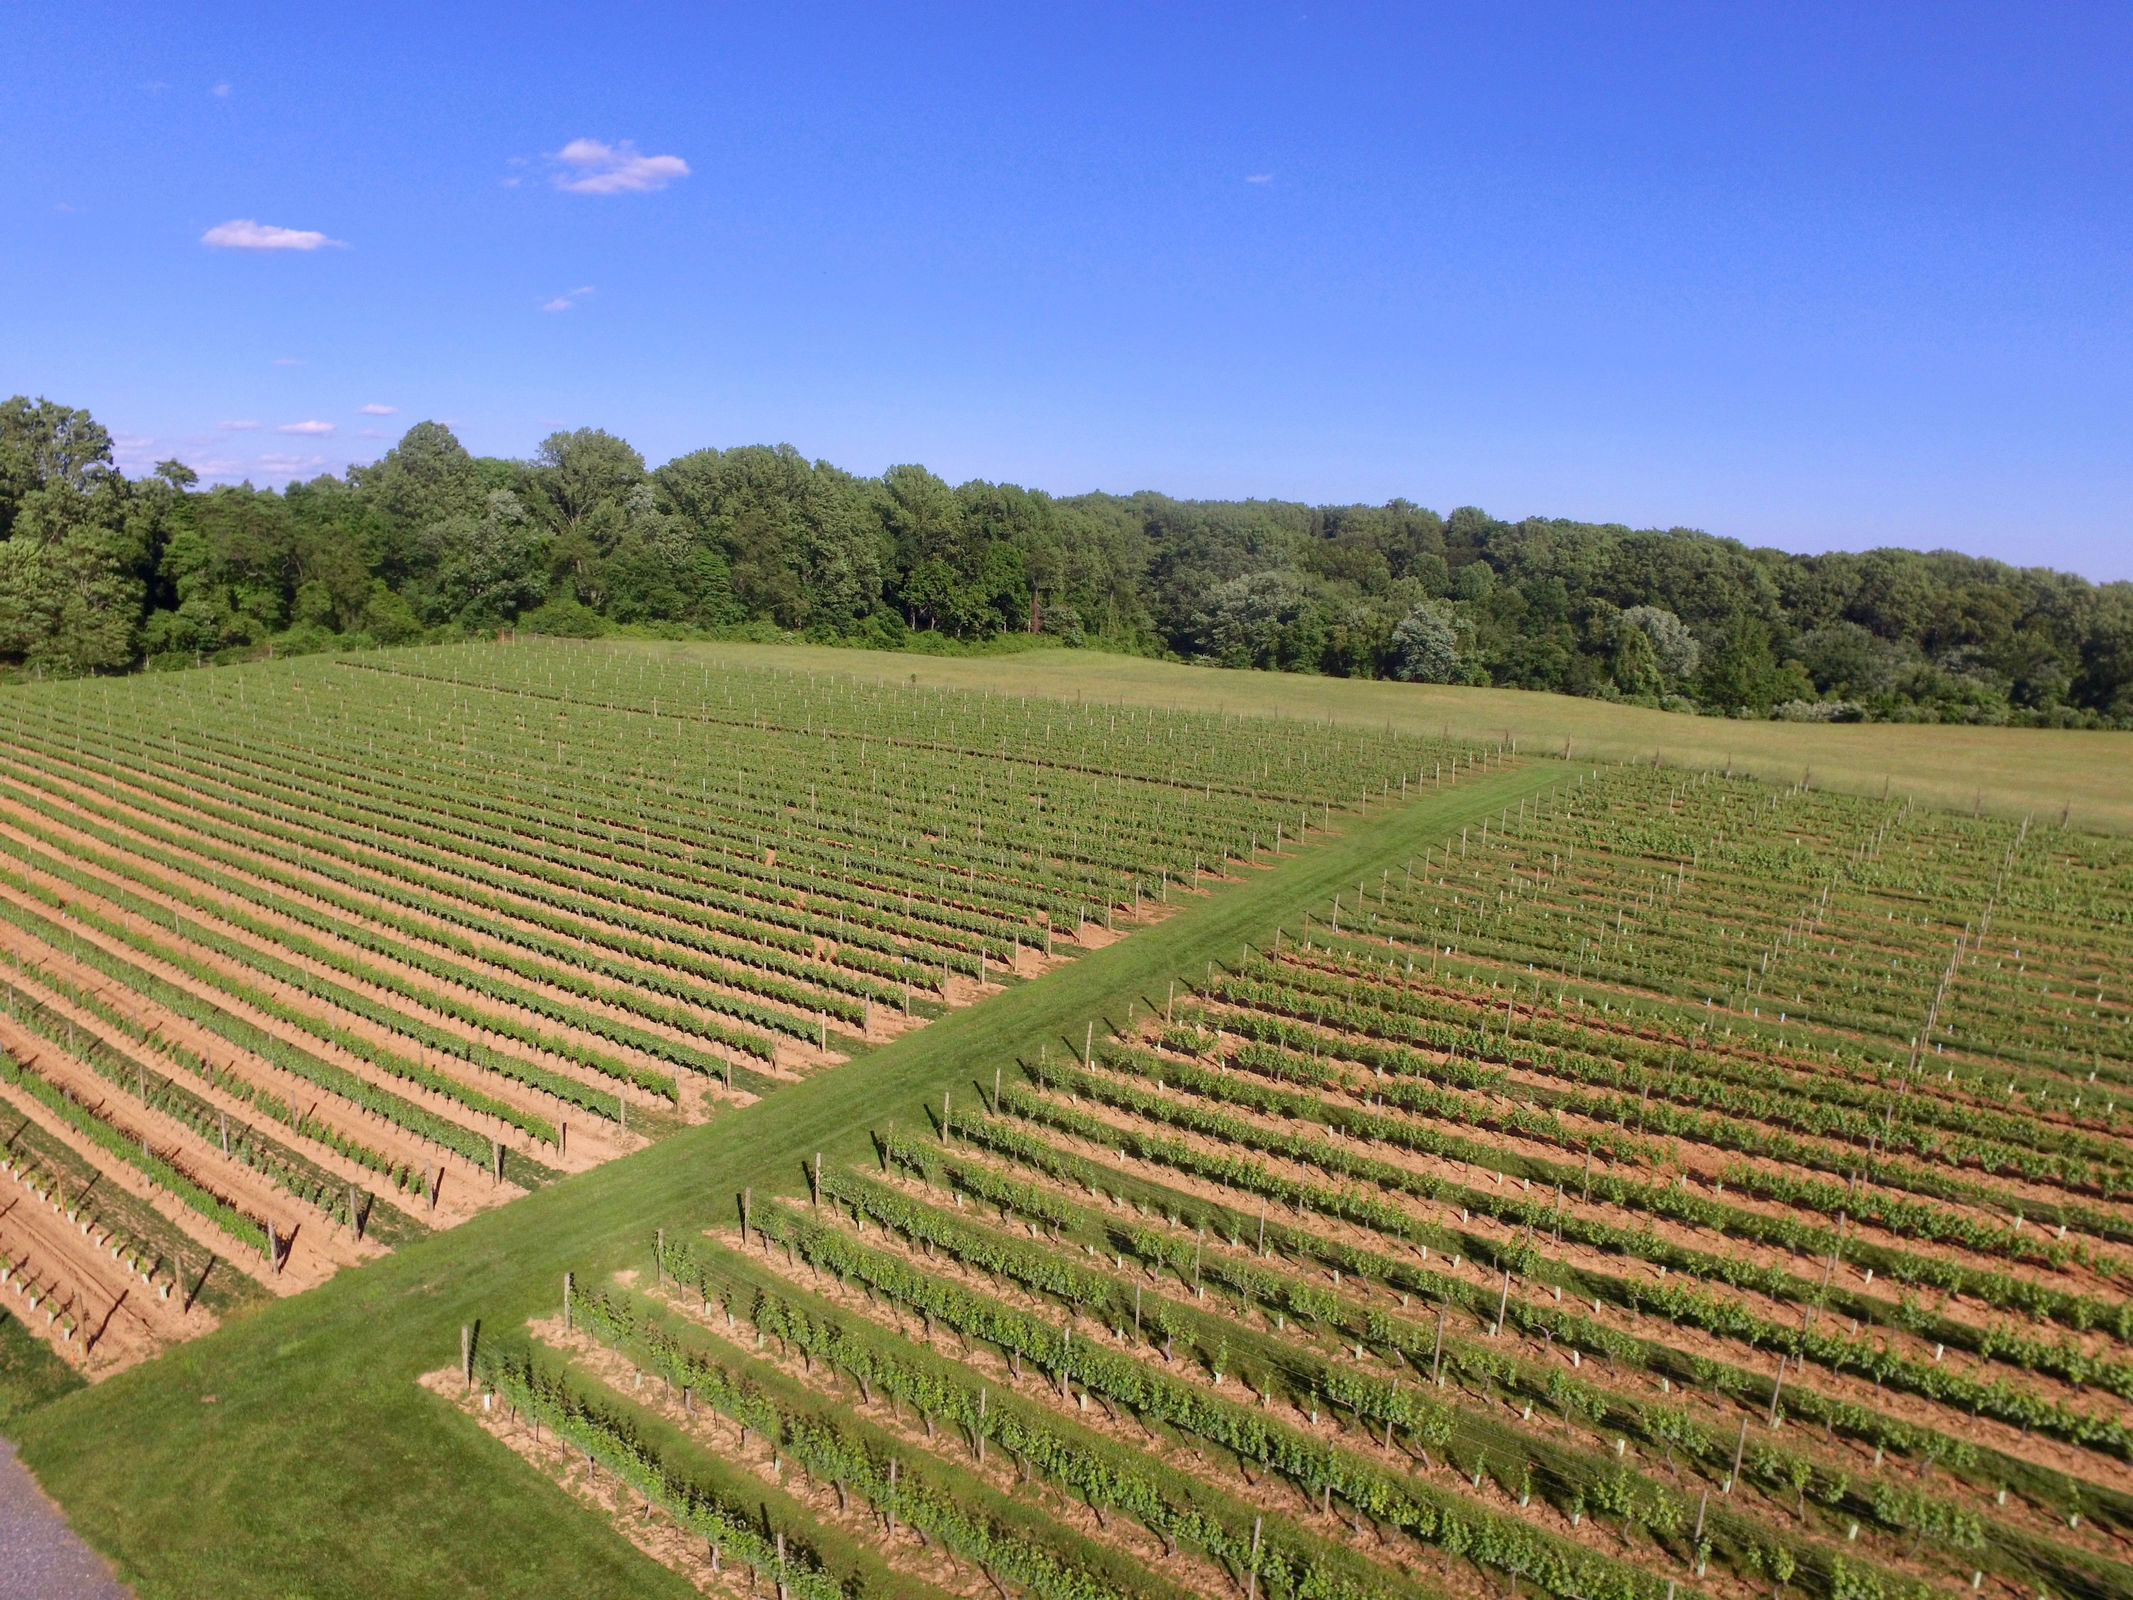 The grape vines at Penns Woods Winery in Chadds Ford, which has produced some very good cab franc wines this year. (Courtesy of Penns Woods Vineyard)